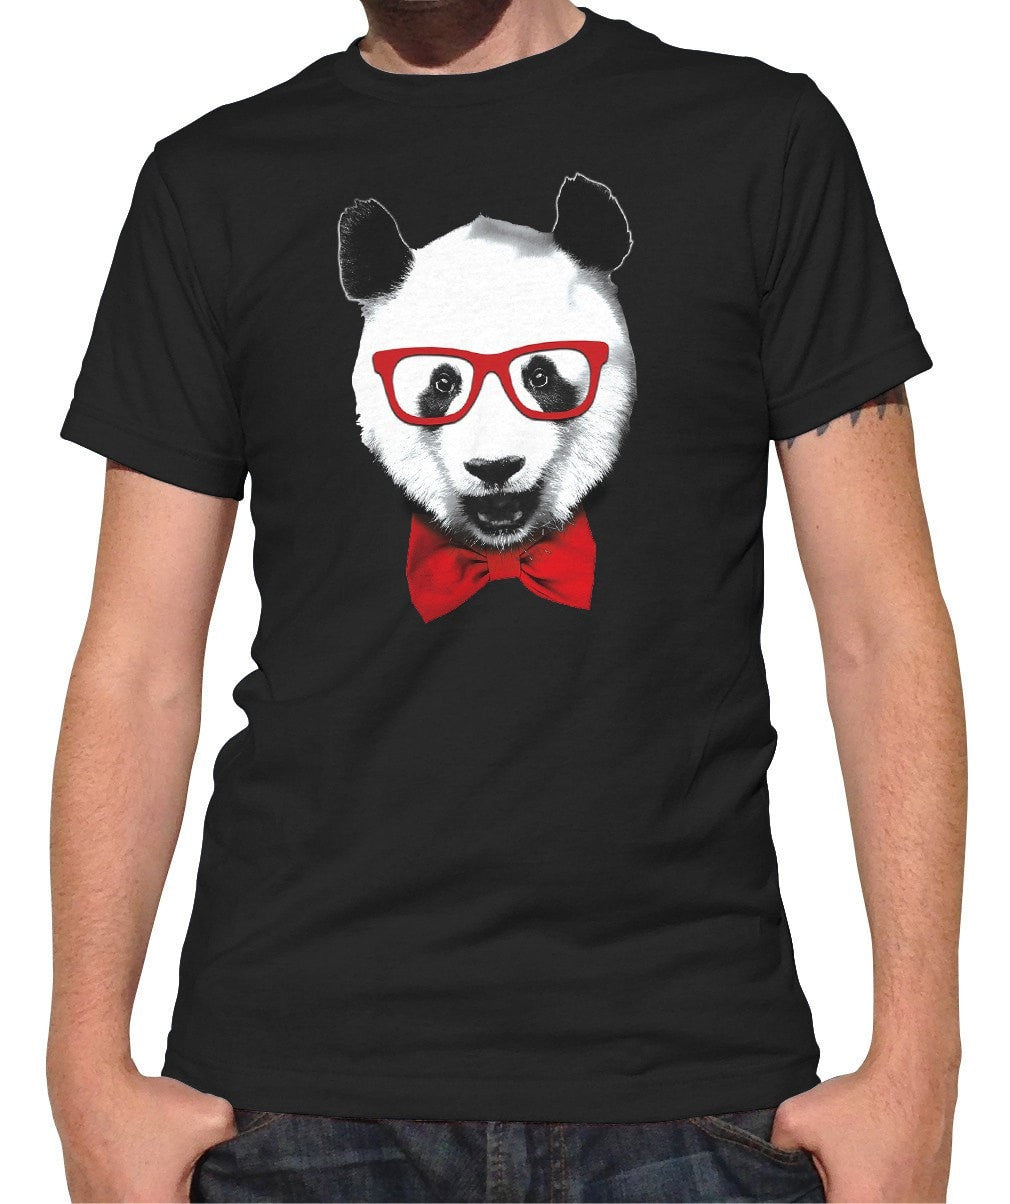 Men's Fancy Panda With Glasses T-Shirt